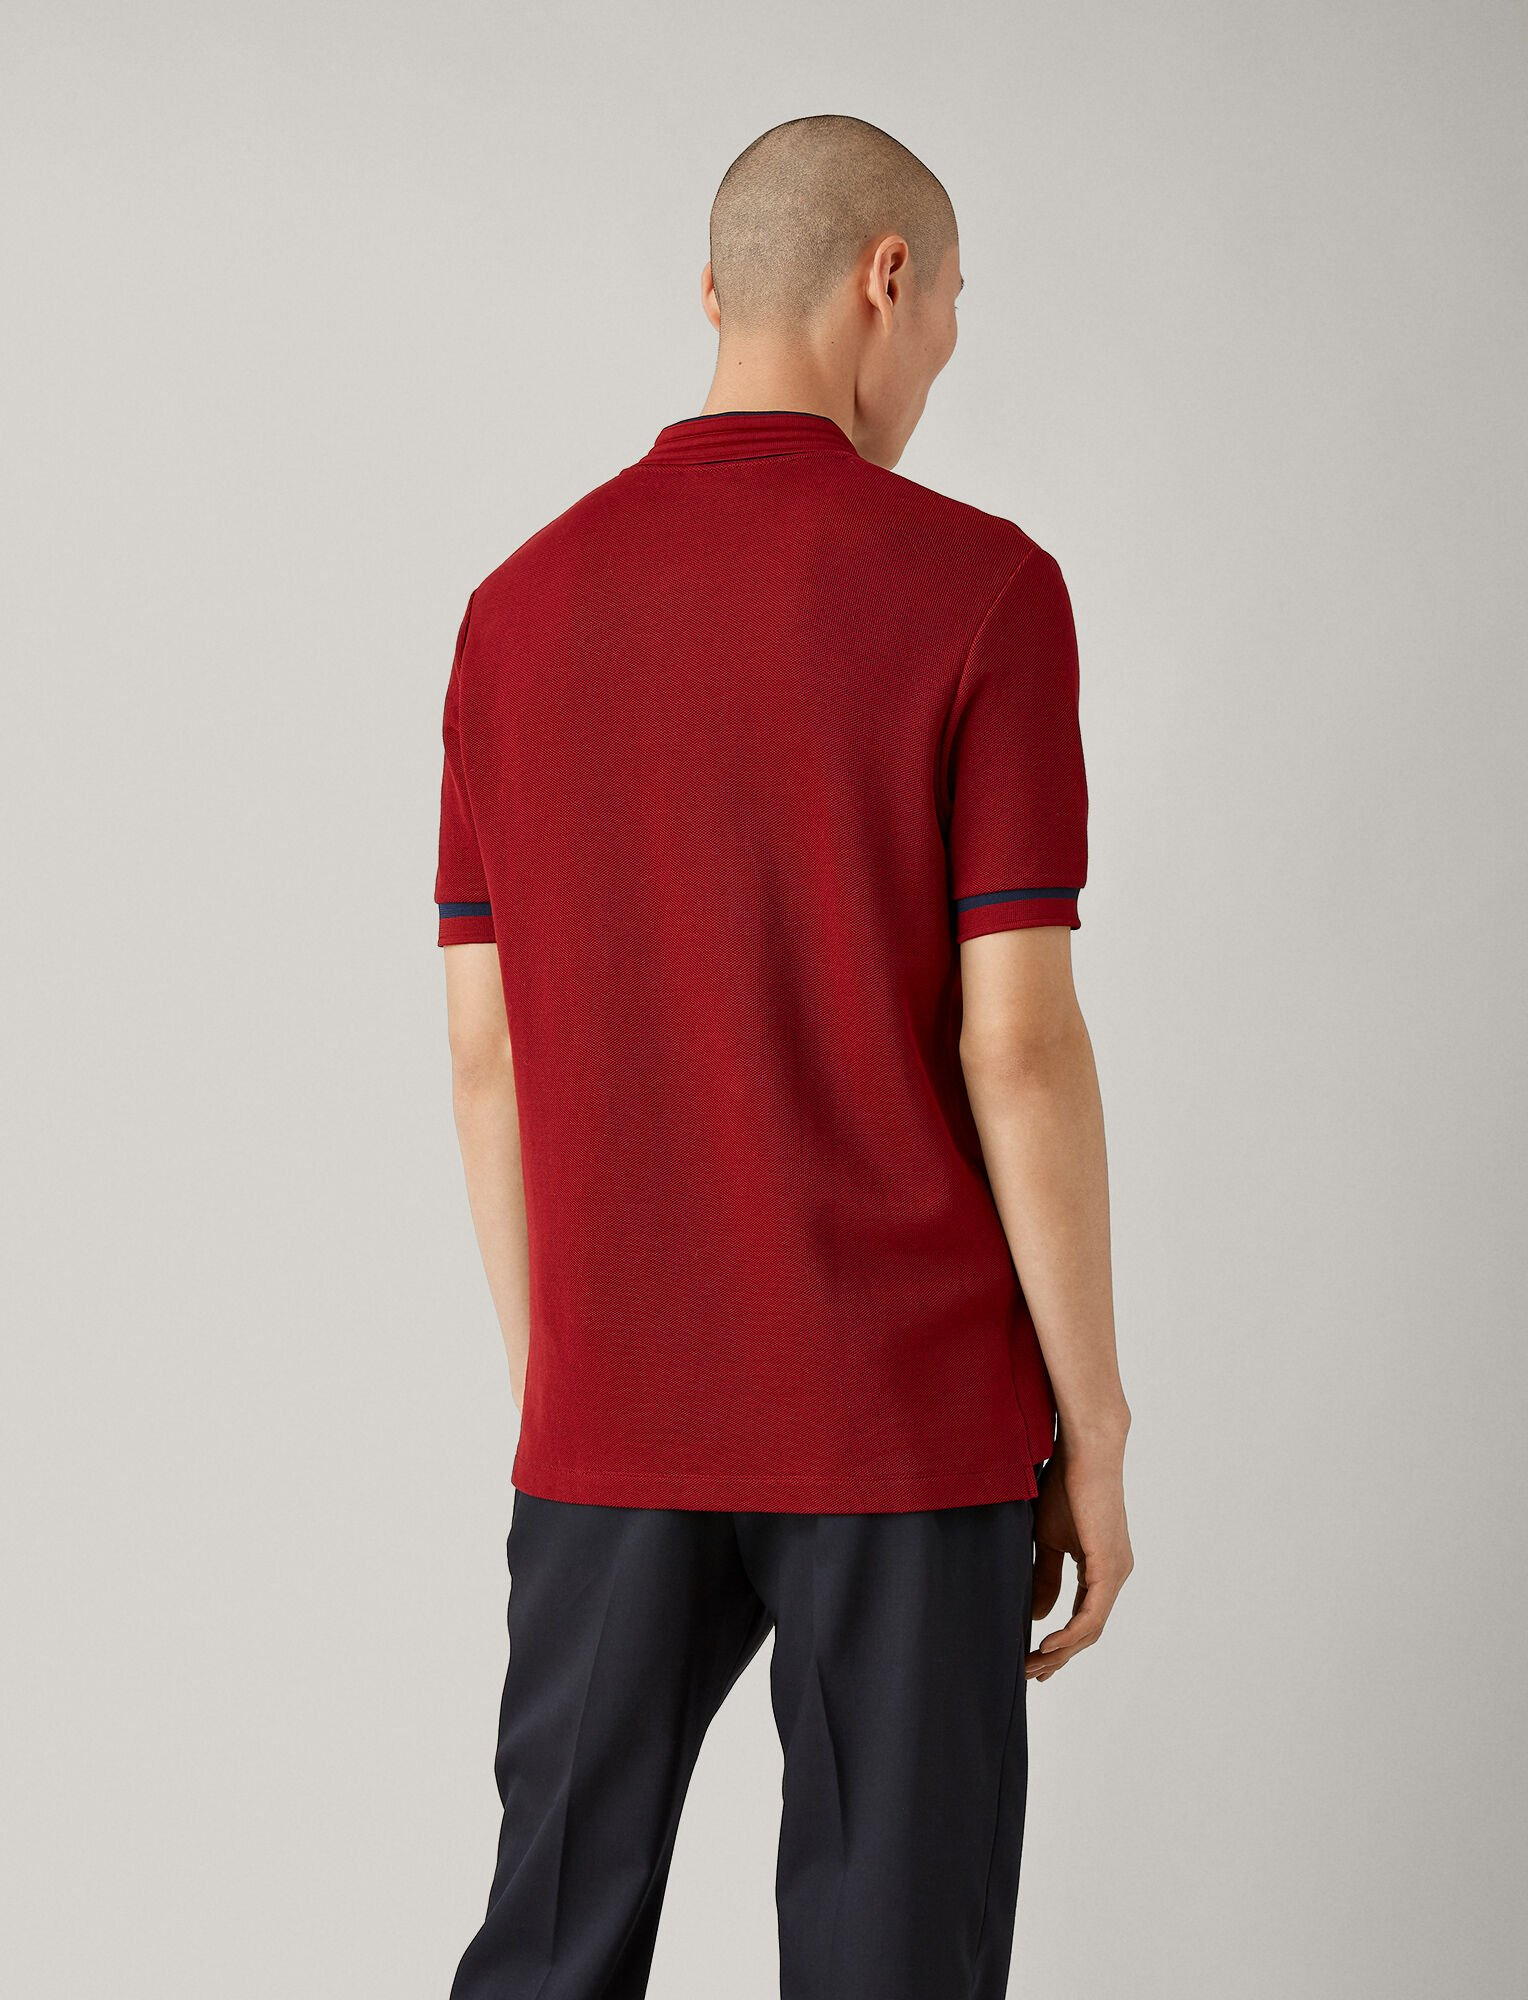 Joseph, Polo Neck Pique Jersey Tee, in CLARET